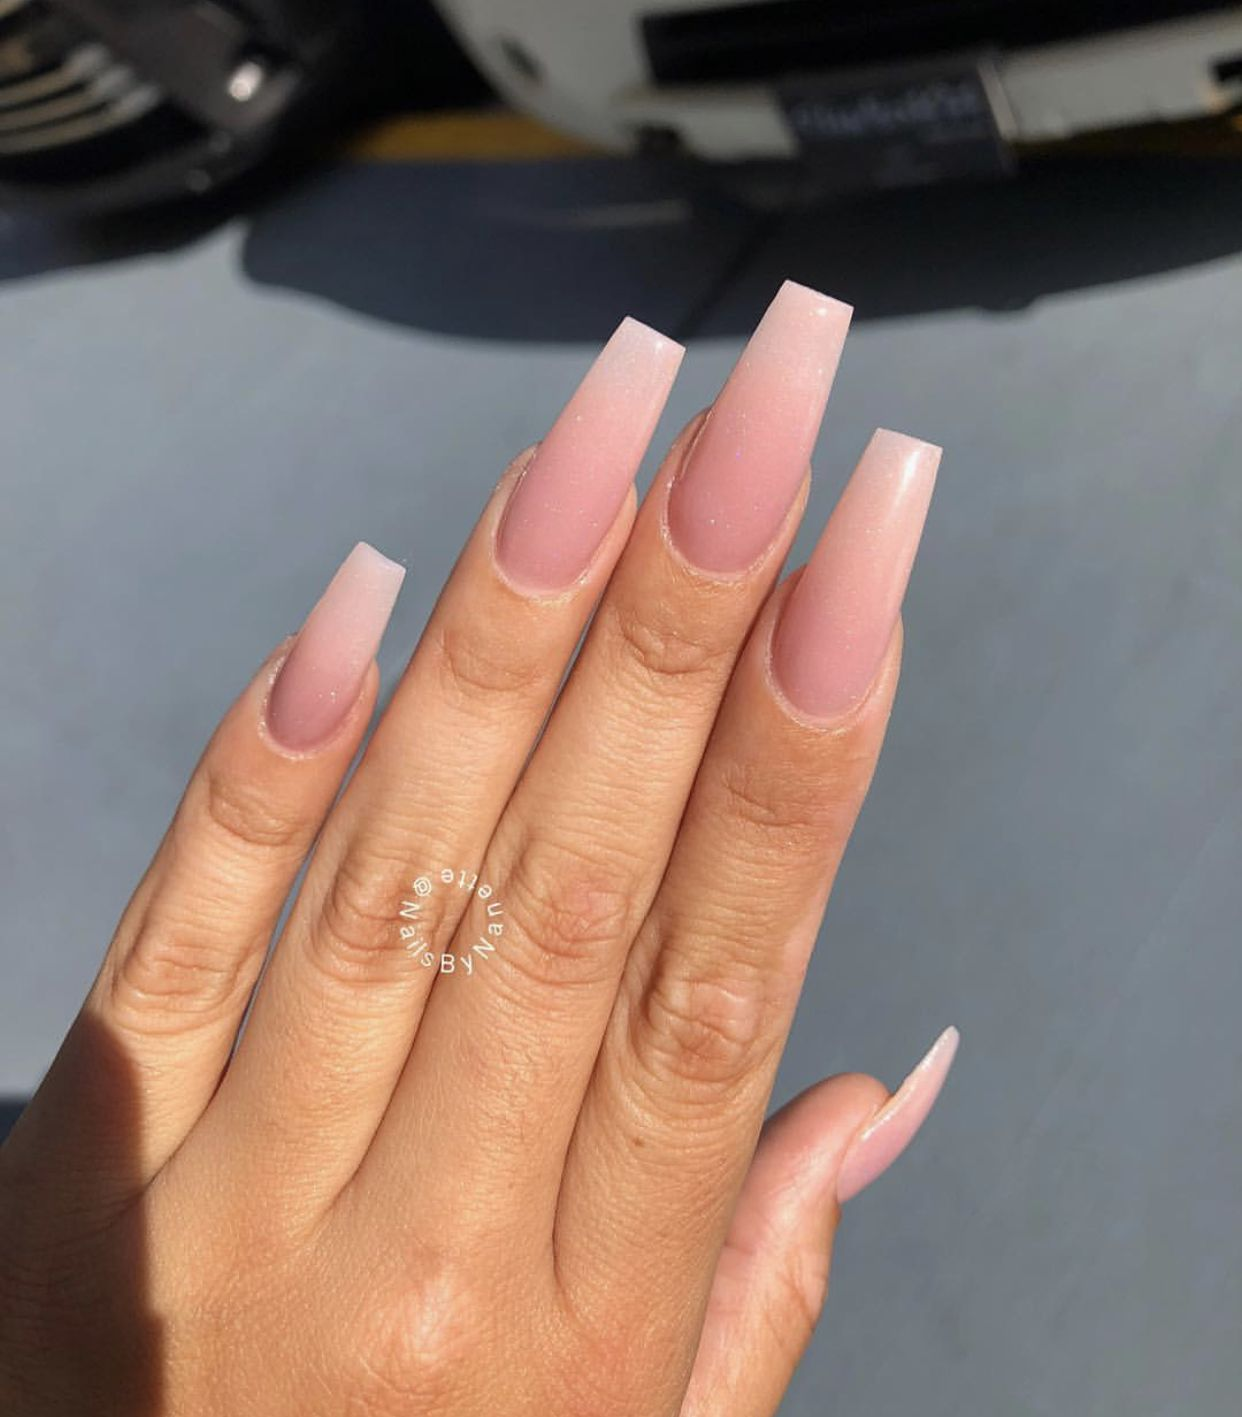 Pin By Angelique On Claws Long Square Acrylic Nails Tapered Square Nails Long Acrylic Nails